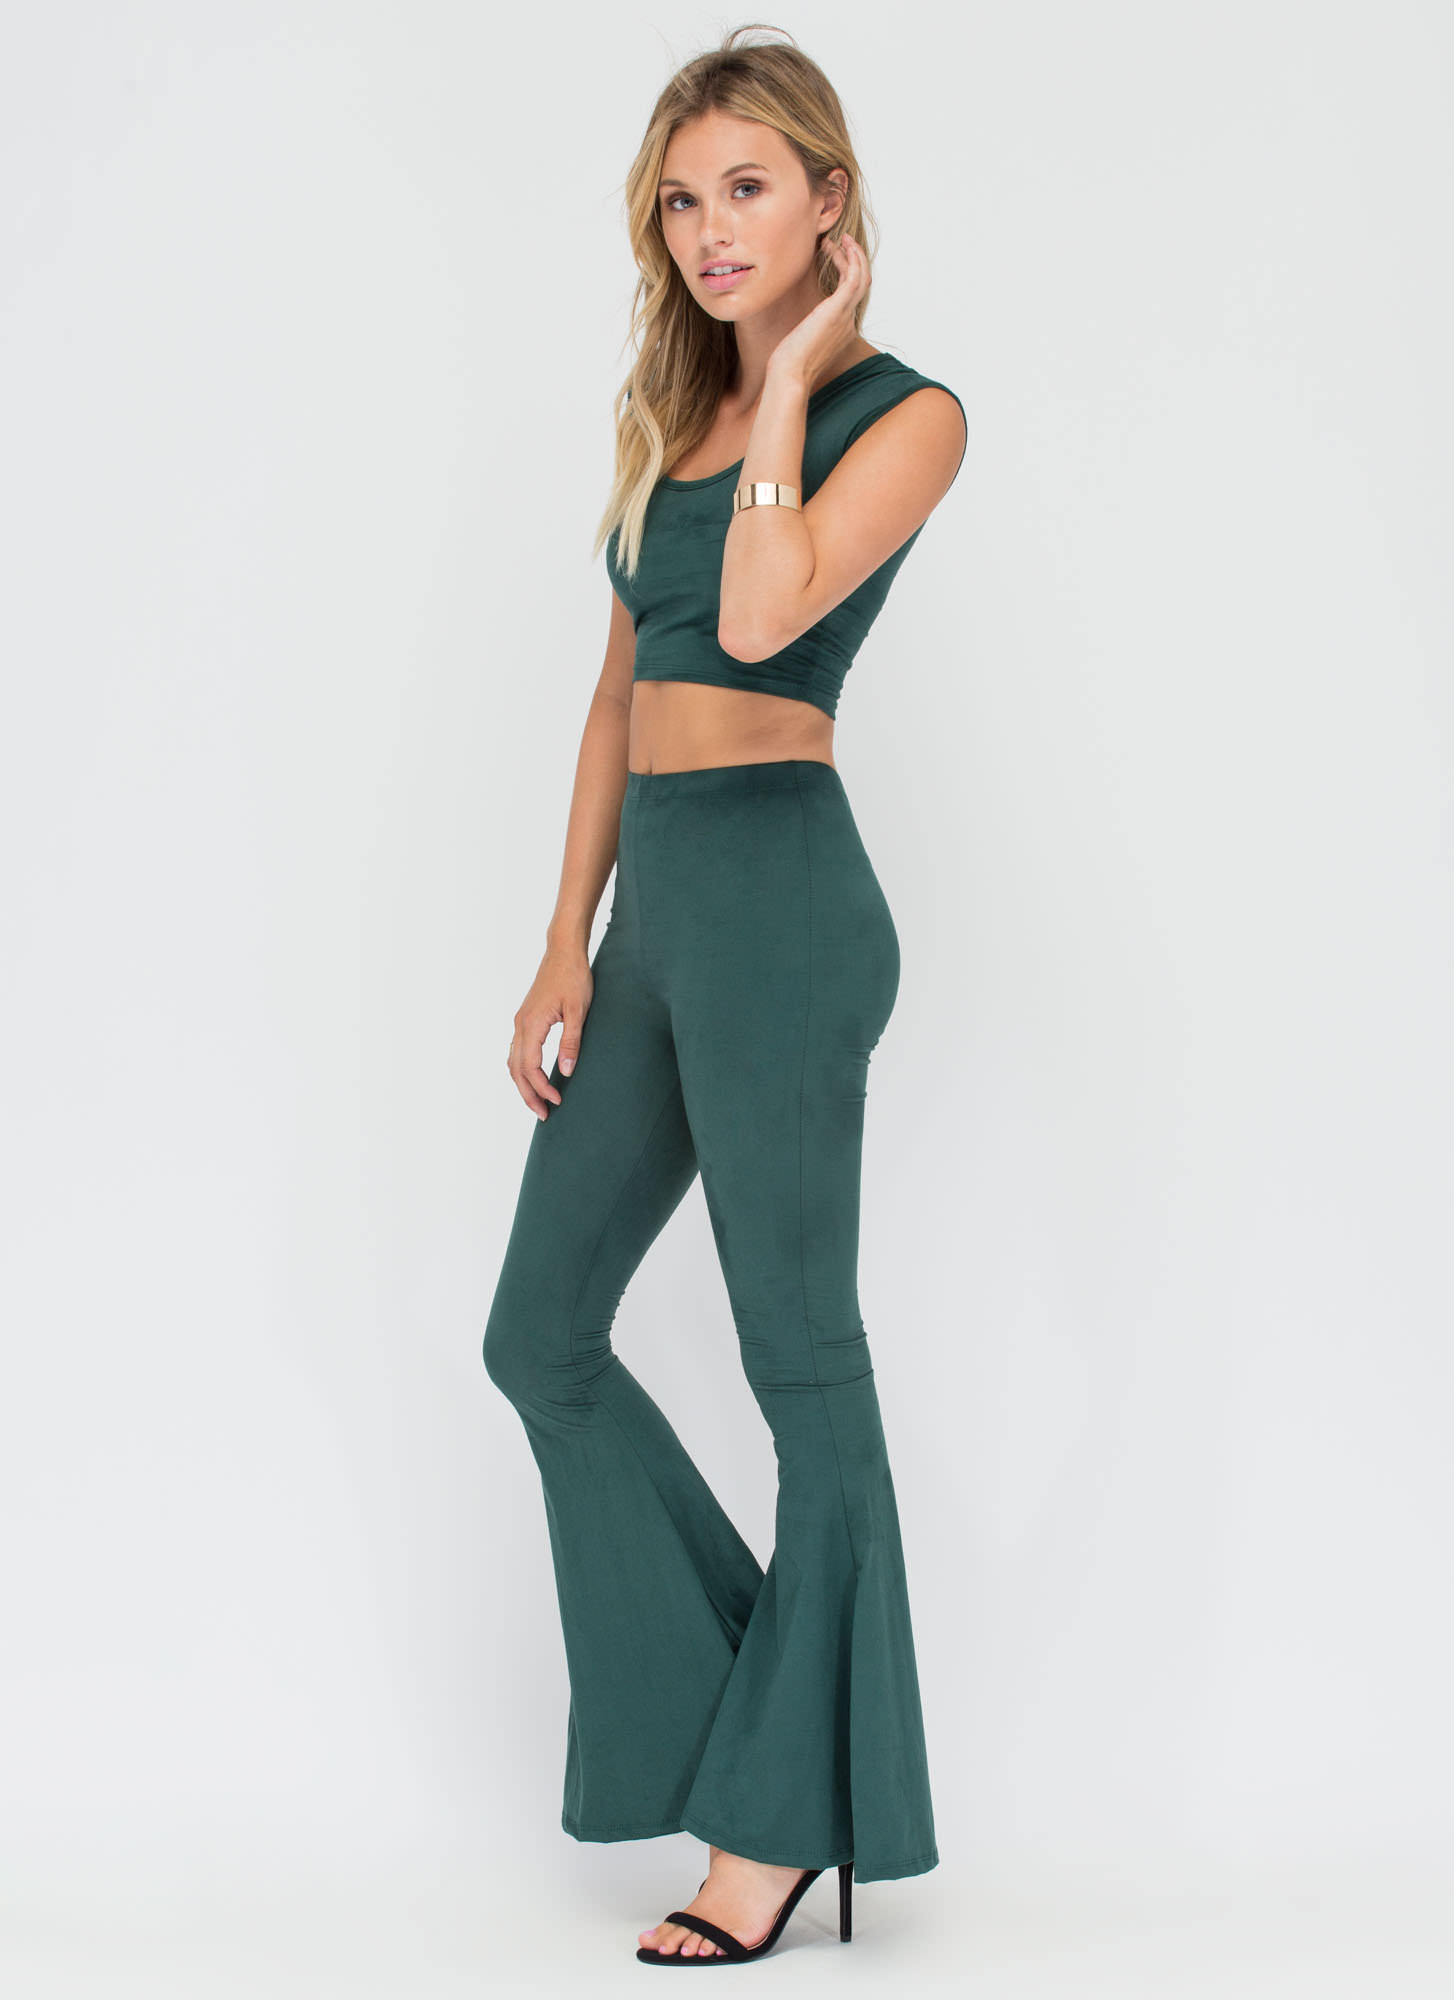 70s Inspo Faux Suede Top 'N Bottom Set HGREEN